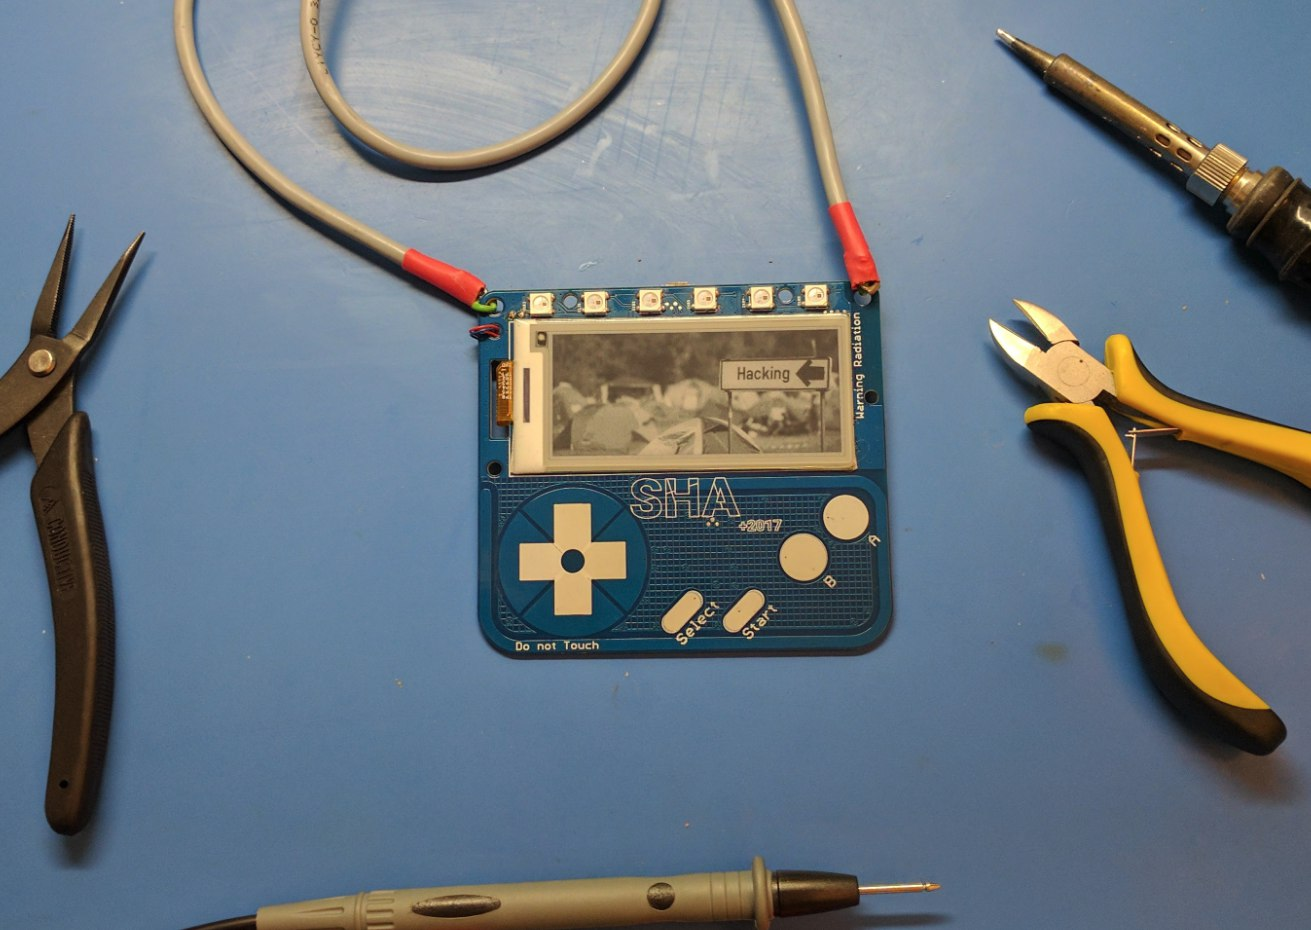 E-paper badge with touch input